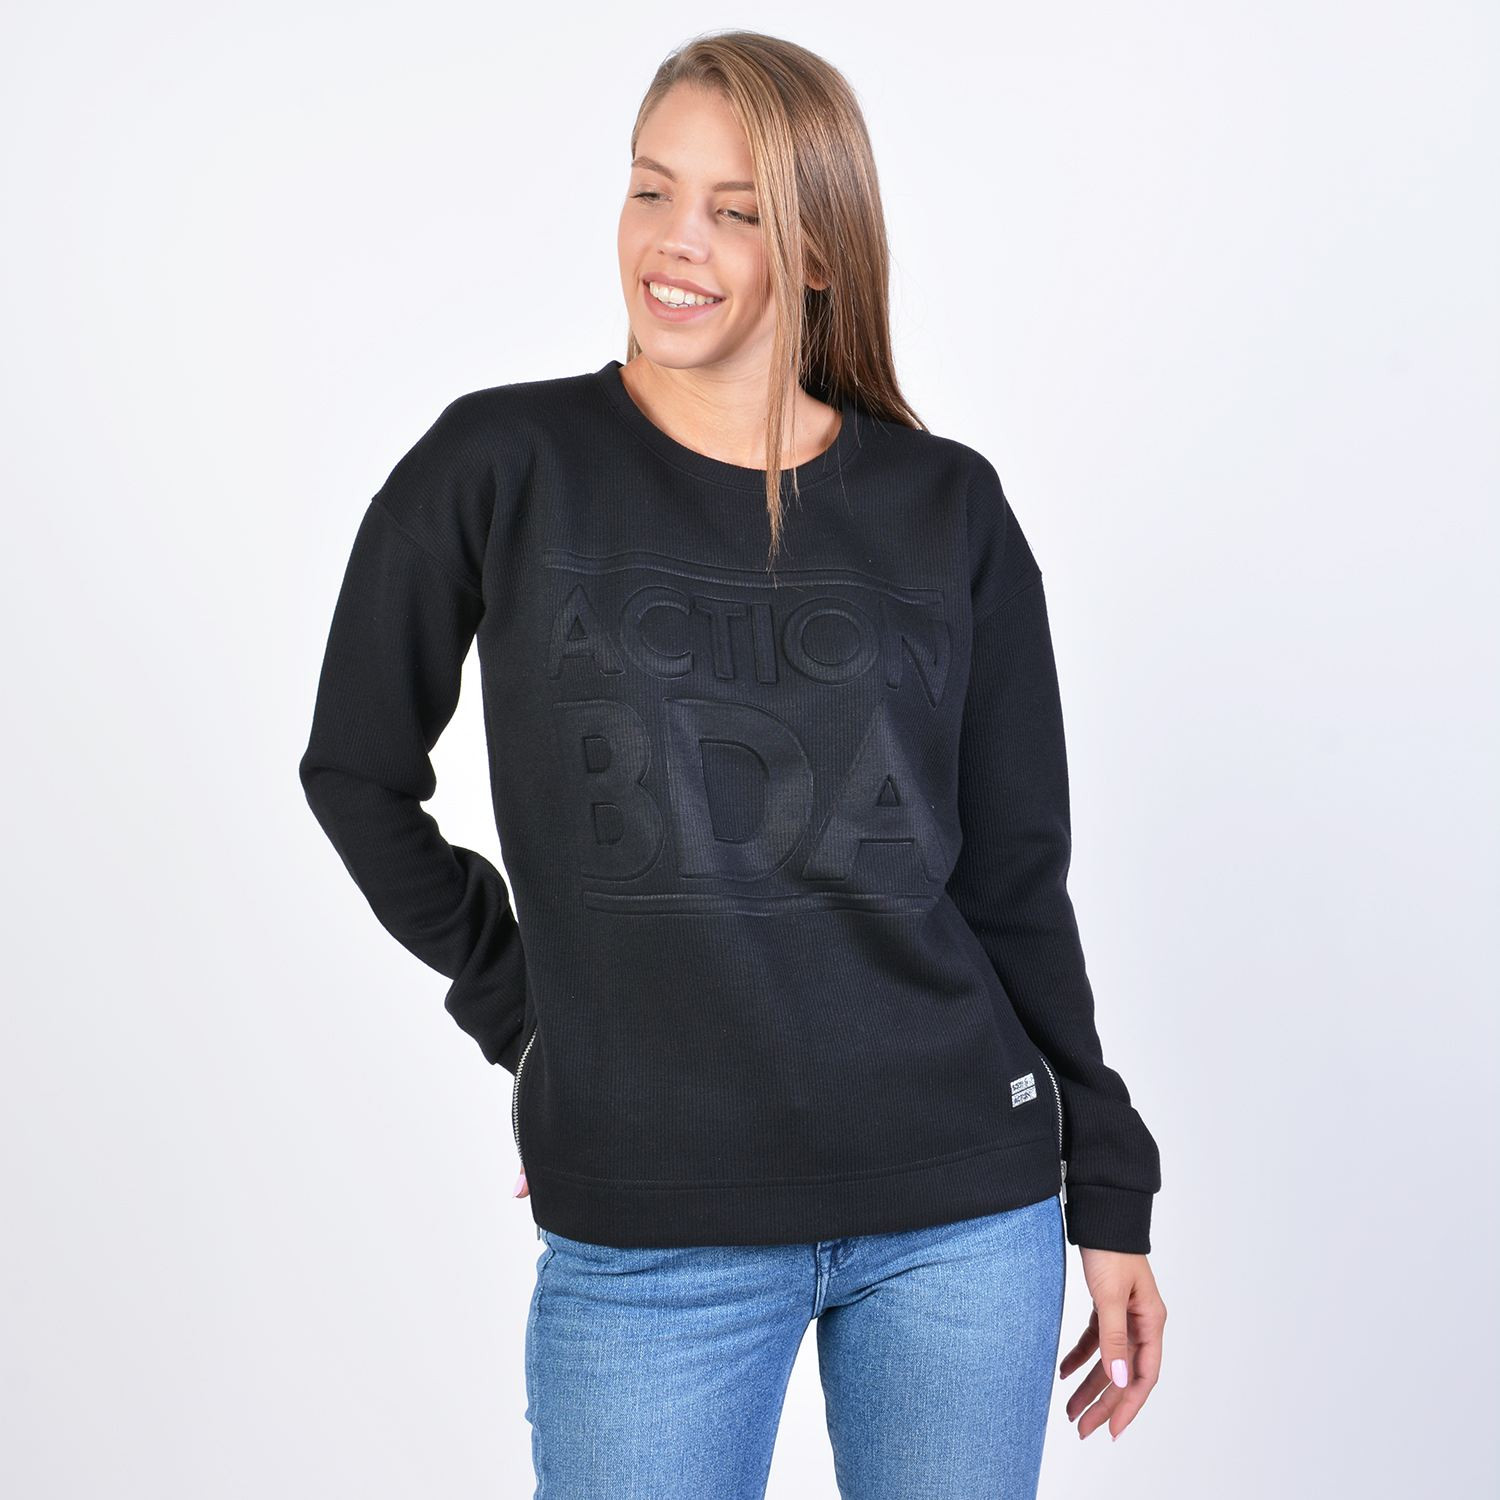 Body Action Women Crew Neck Jumper (9000041204_1899)